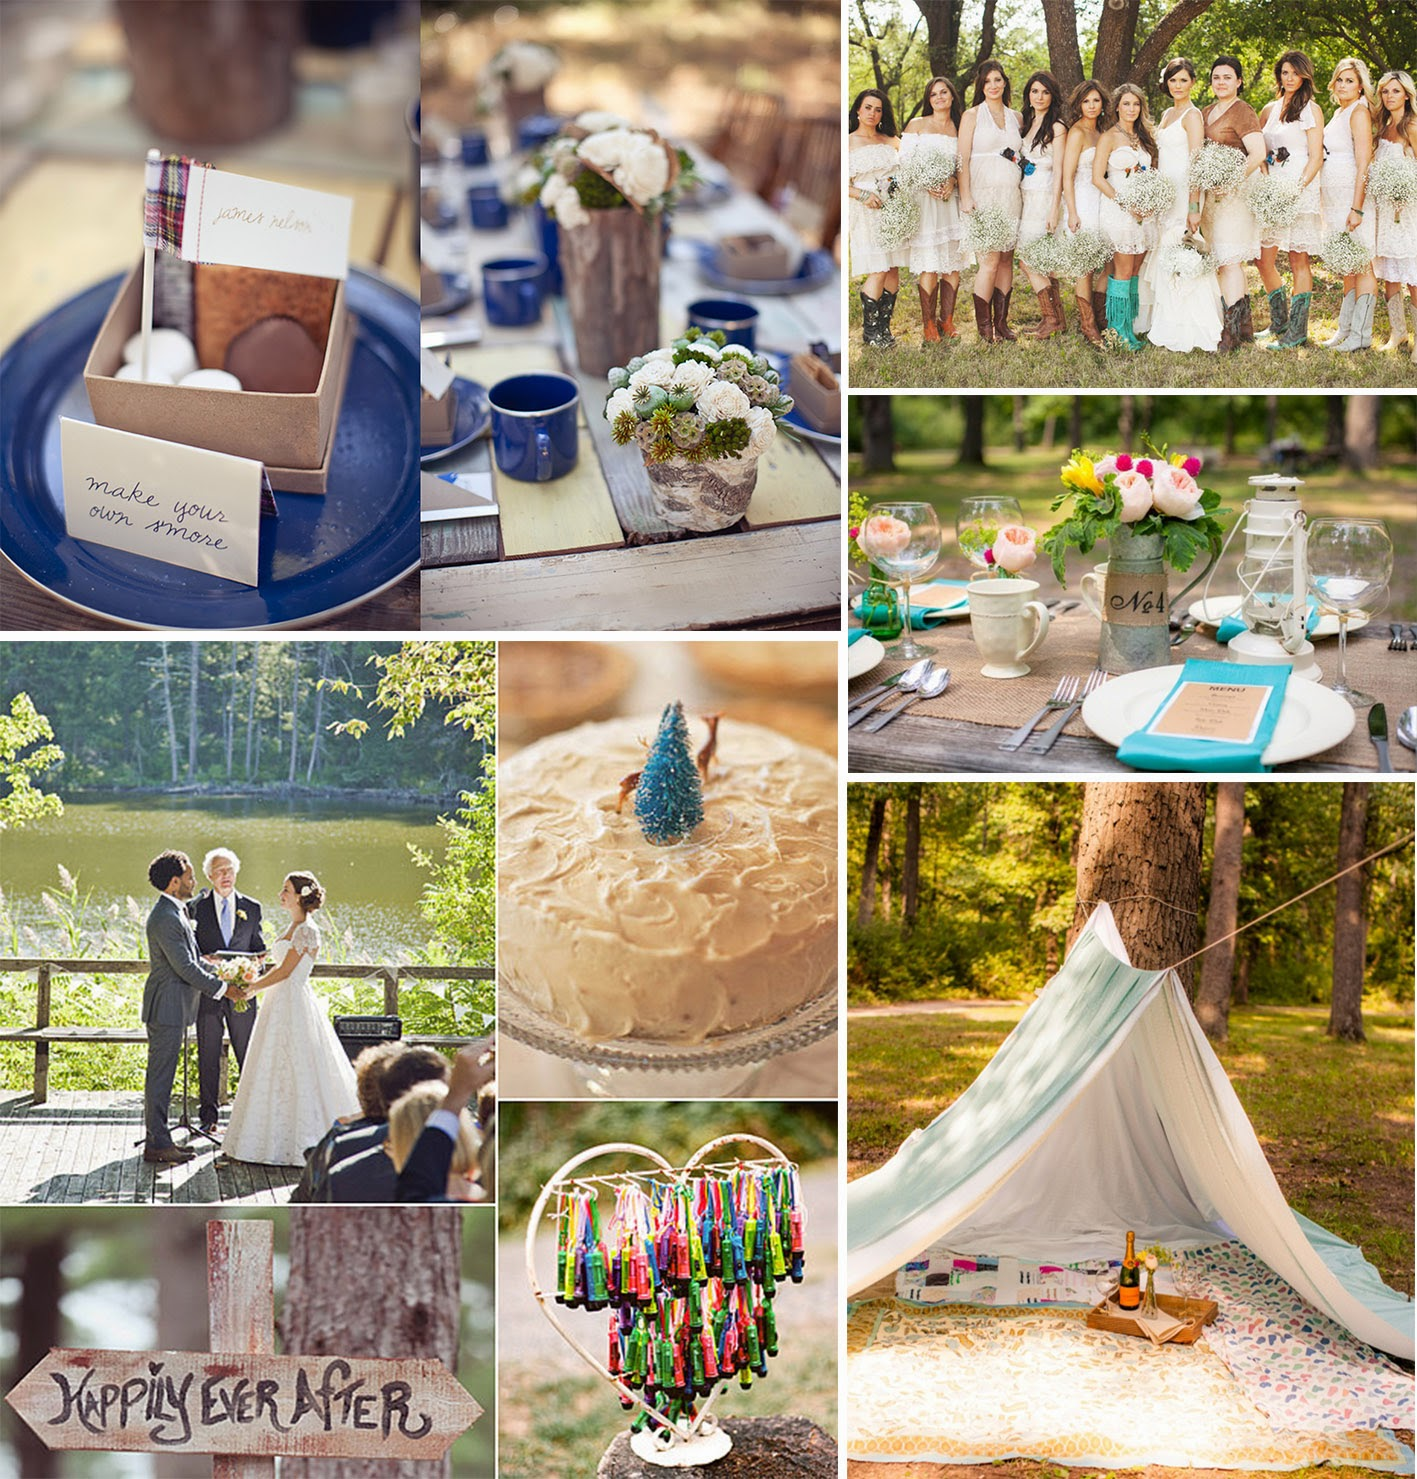 A Camp Themed Wedding Is Perfect Theme For The Who Loves Great Outdoors And Especially Ing In Woods Free Backdrop